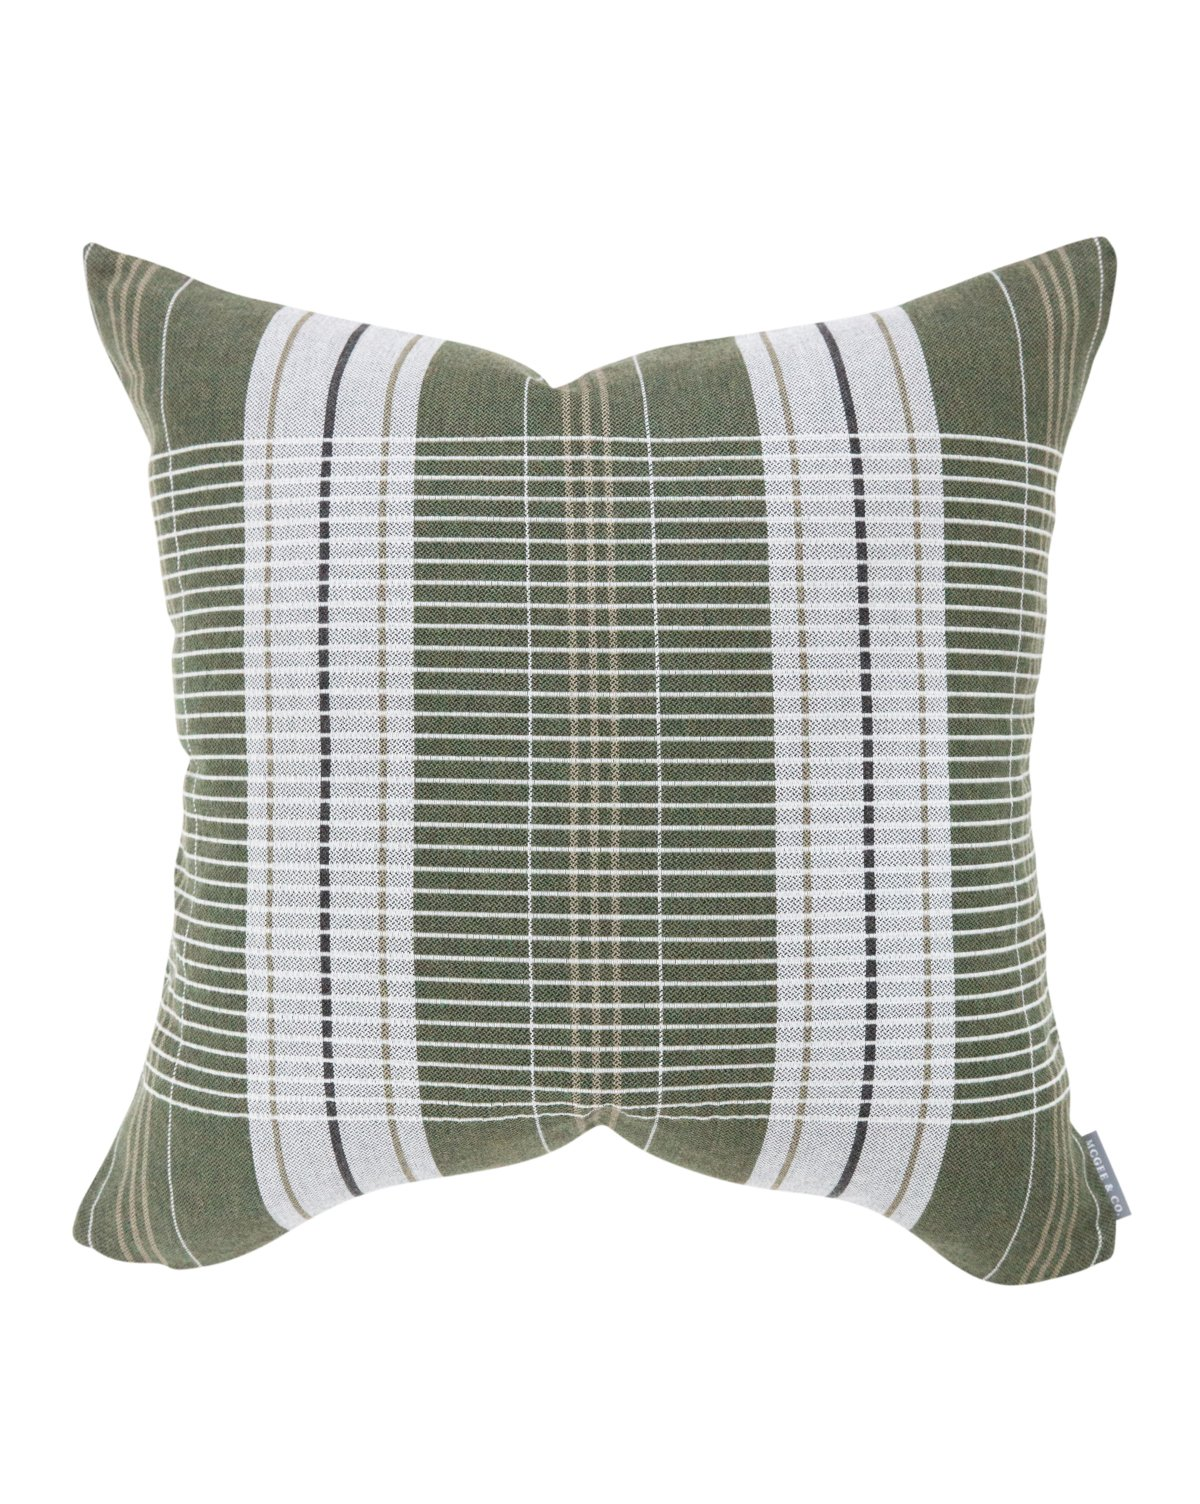 Oxford_Woven_Plaid_-_Green_5c5c94b1-9f6f-4296-82eb-611f87ddaf67.jpg